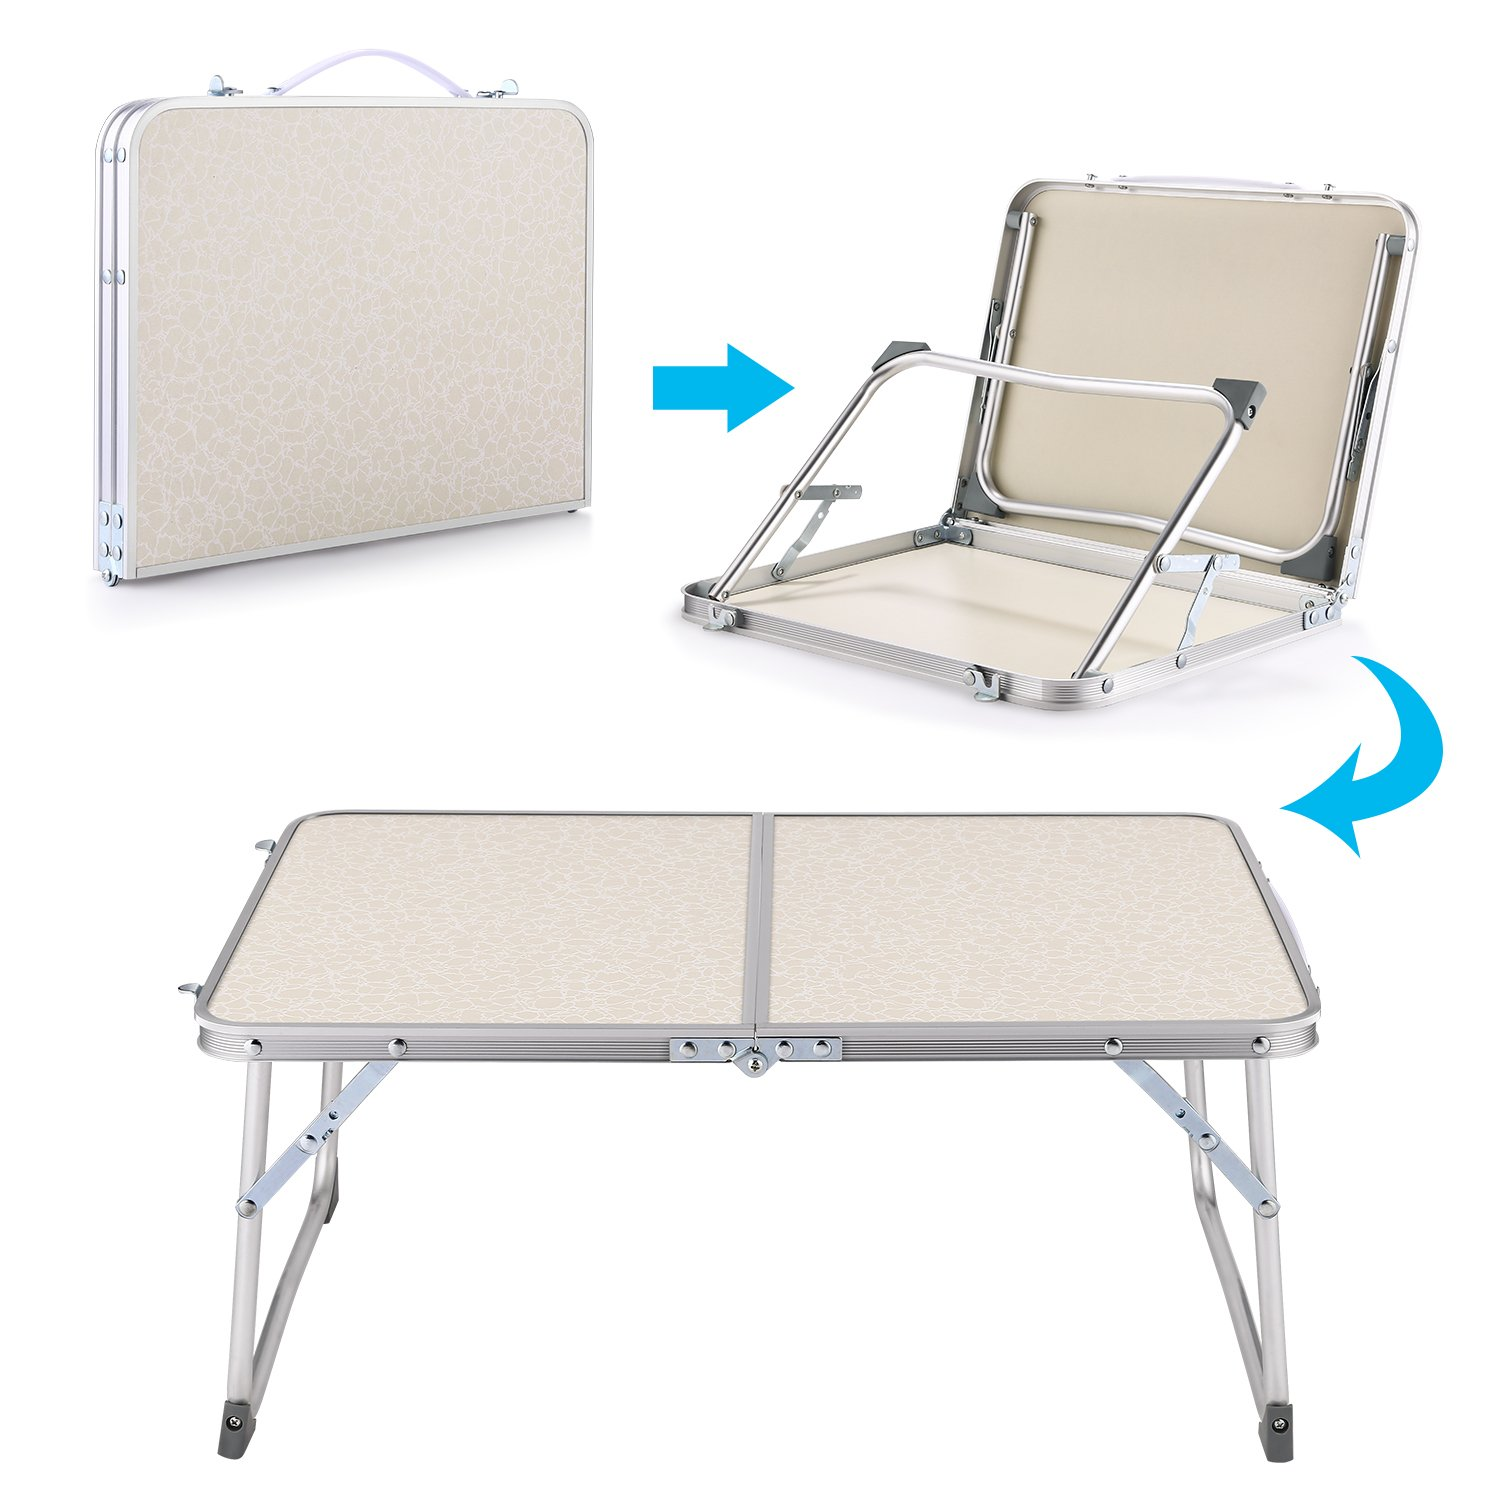 Hindom Aluminum Portable Folding Utility Table with Carrying Handle Portable Patio Table for Garden Party Camping Picnic(US Stock) (White)